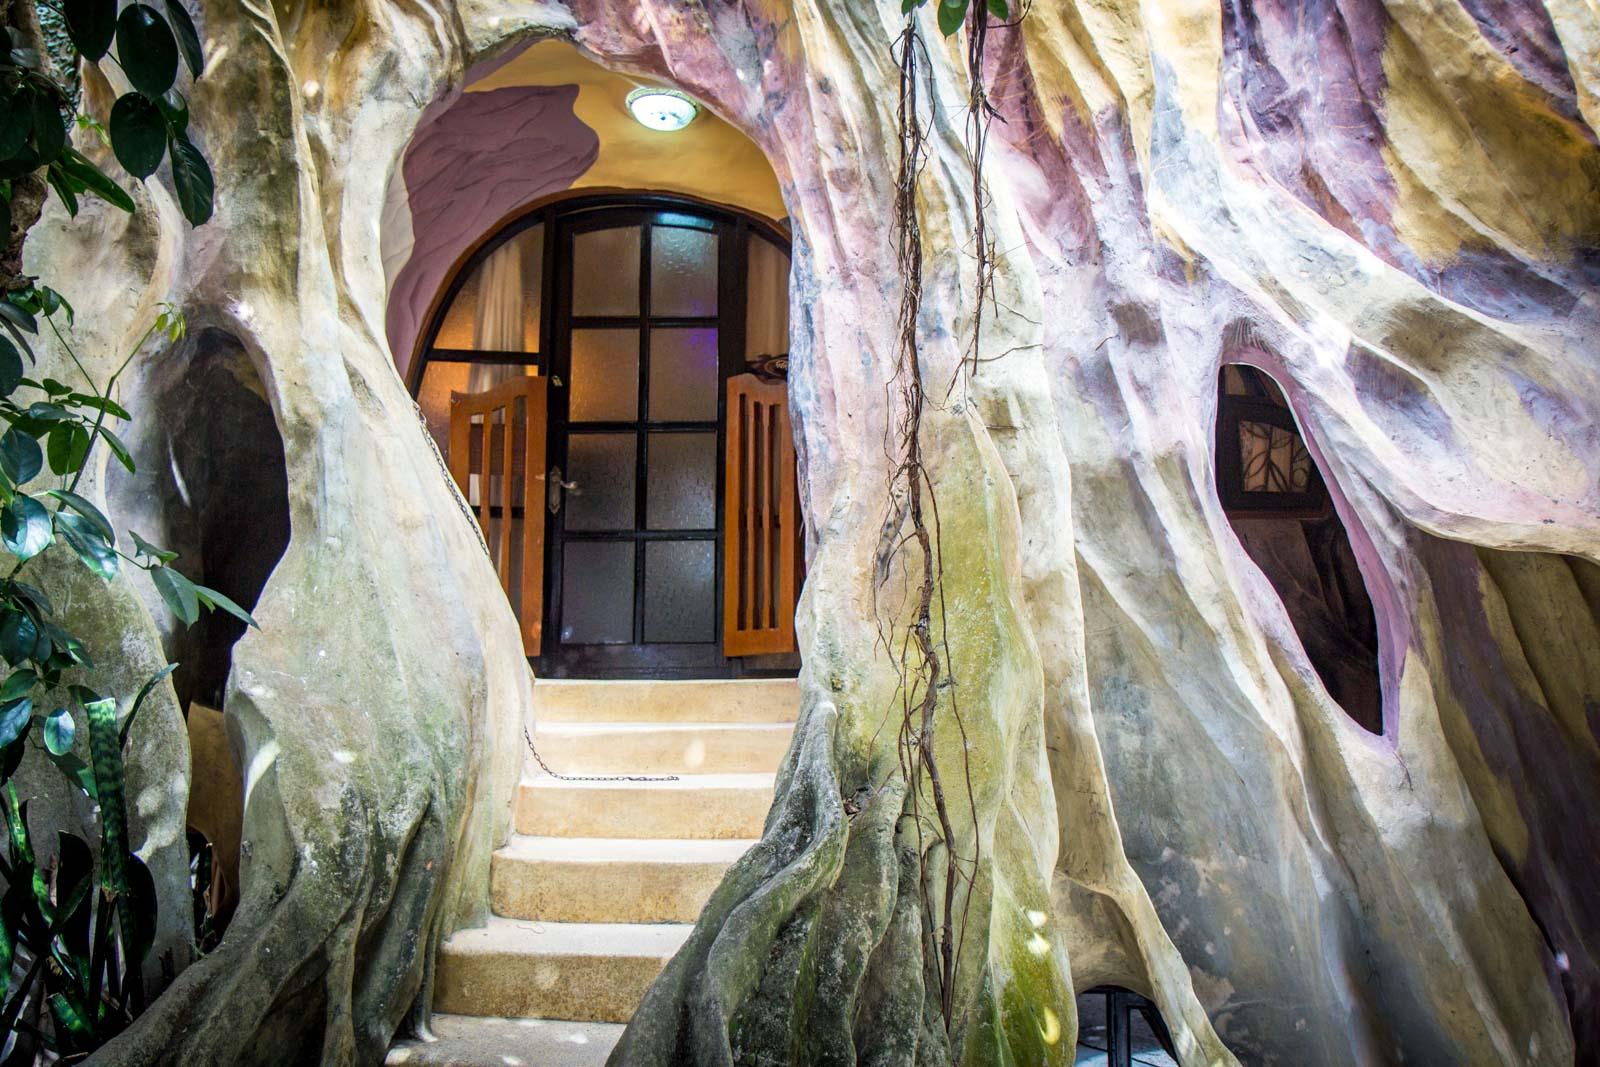 Stay at Crazy House, Dalat, Vietnam